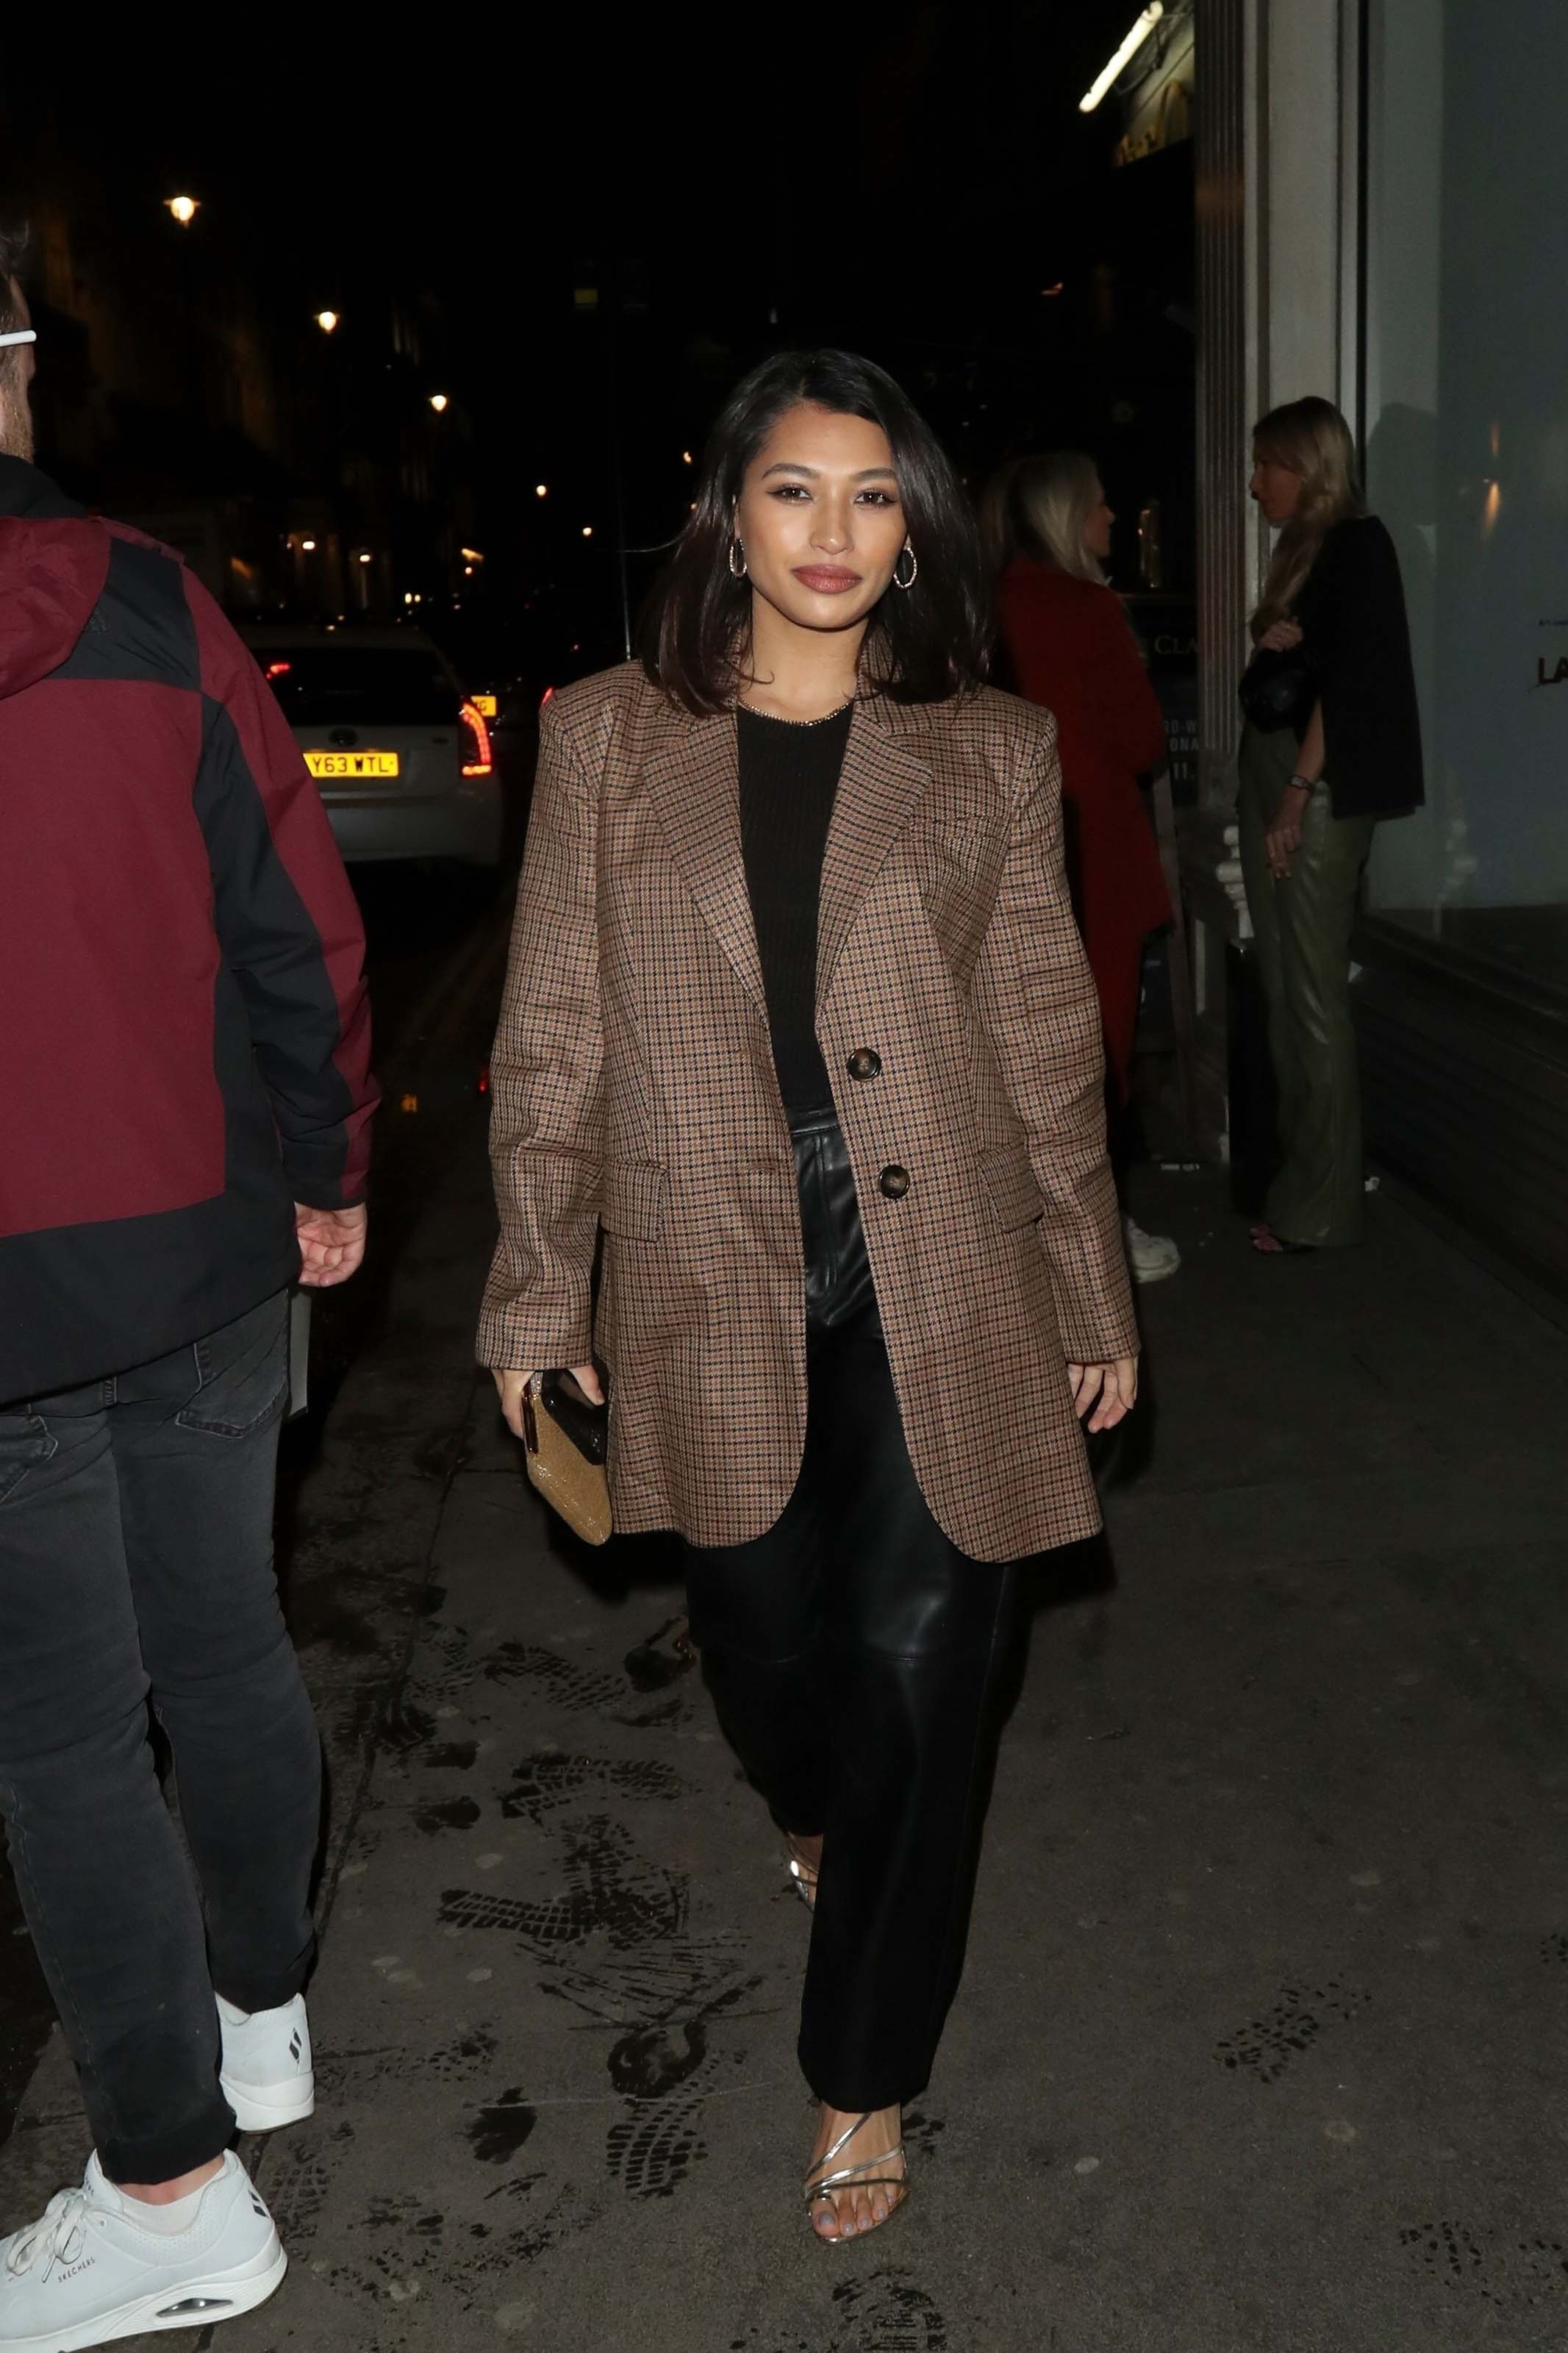 Vanessa White pictured arriving at Mahiki